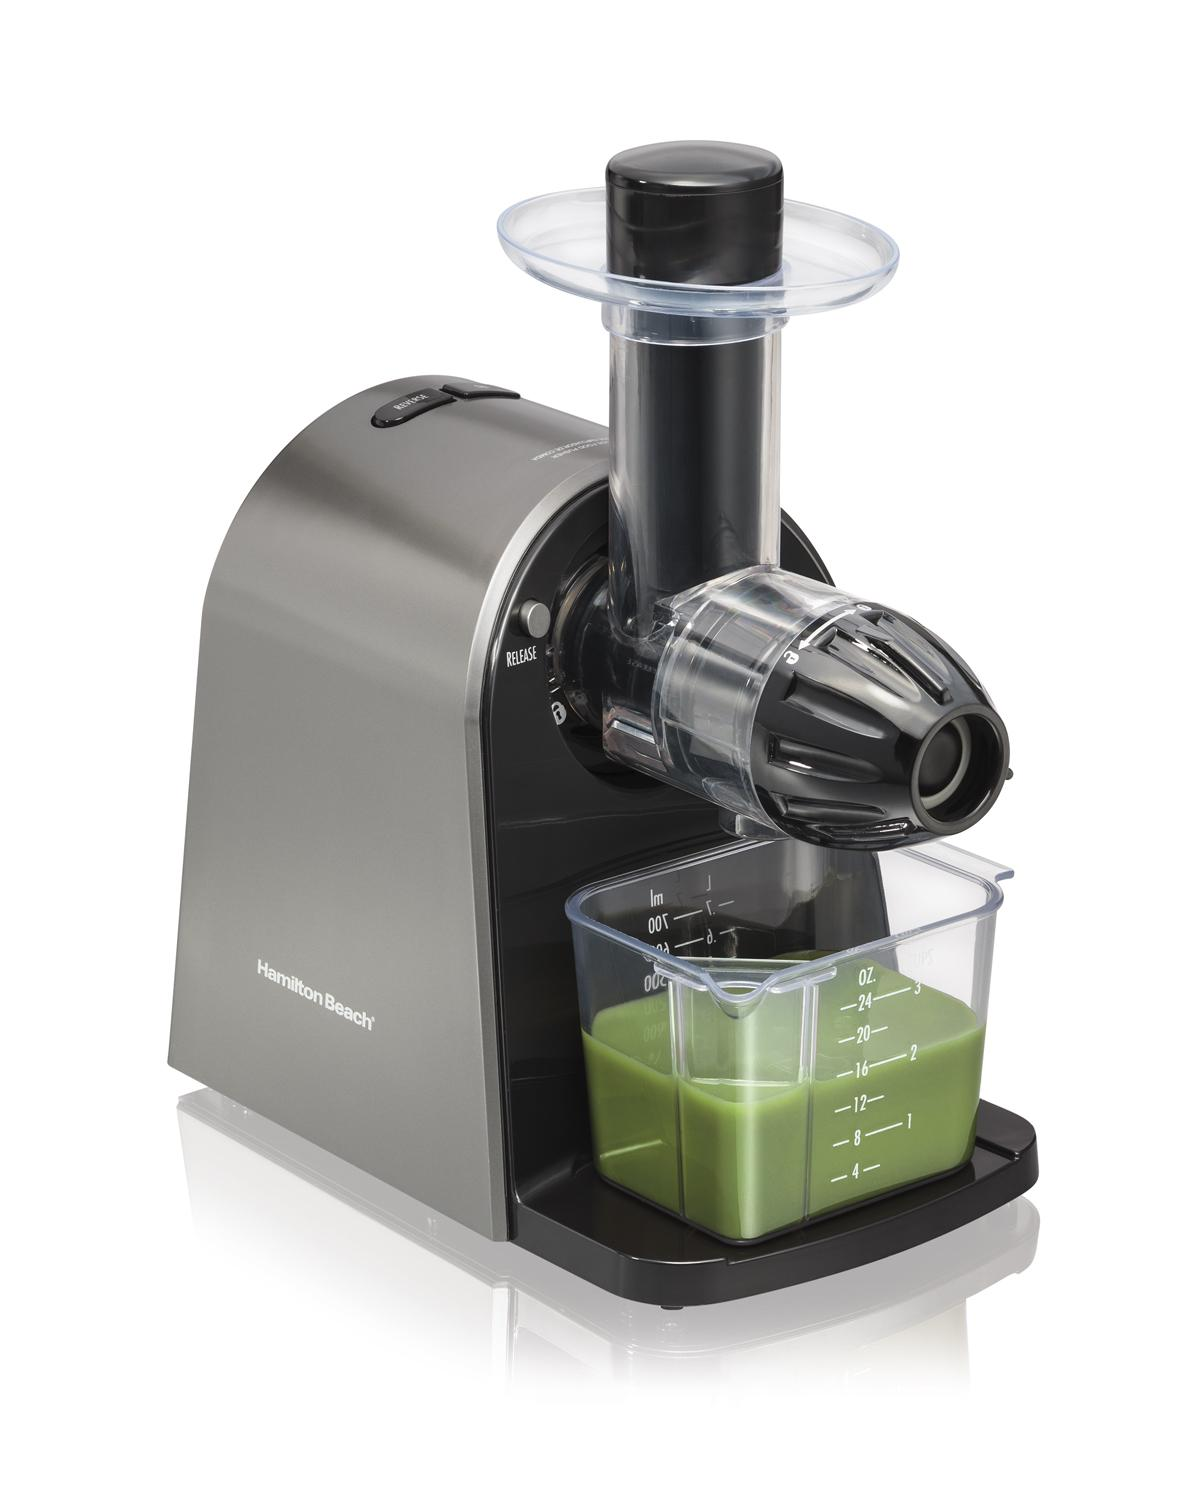 Tefal Infiny Slow Juicer Review : juicer breville commercial cuisinart omega extractor slow juicers electric vegetable masticating